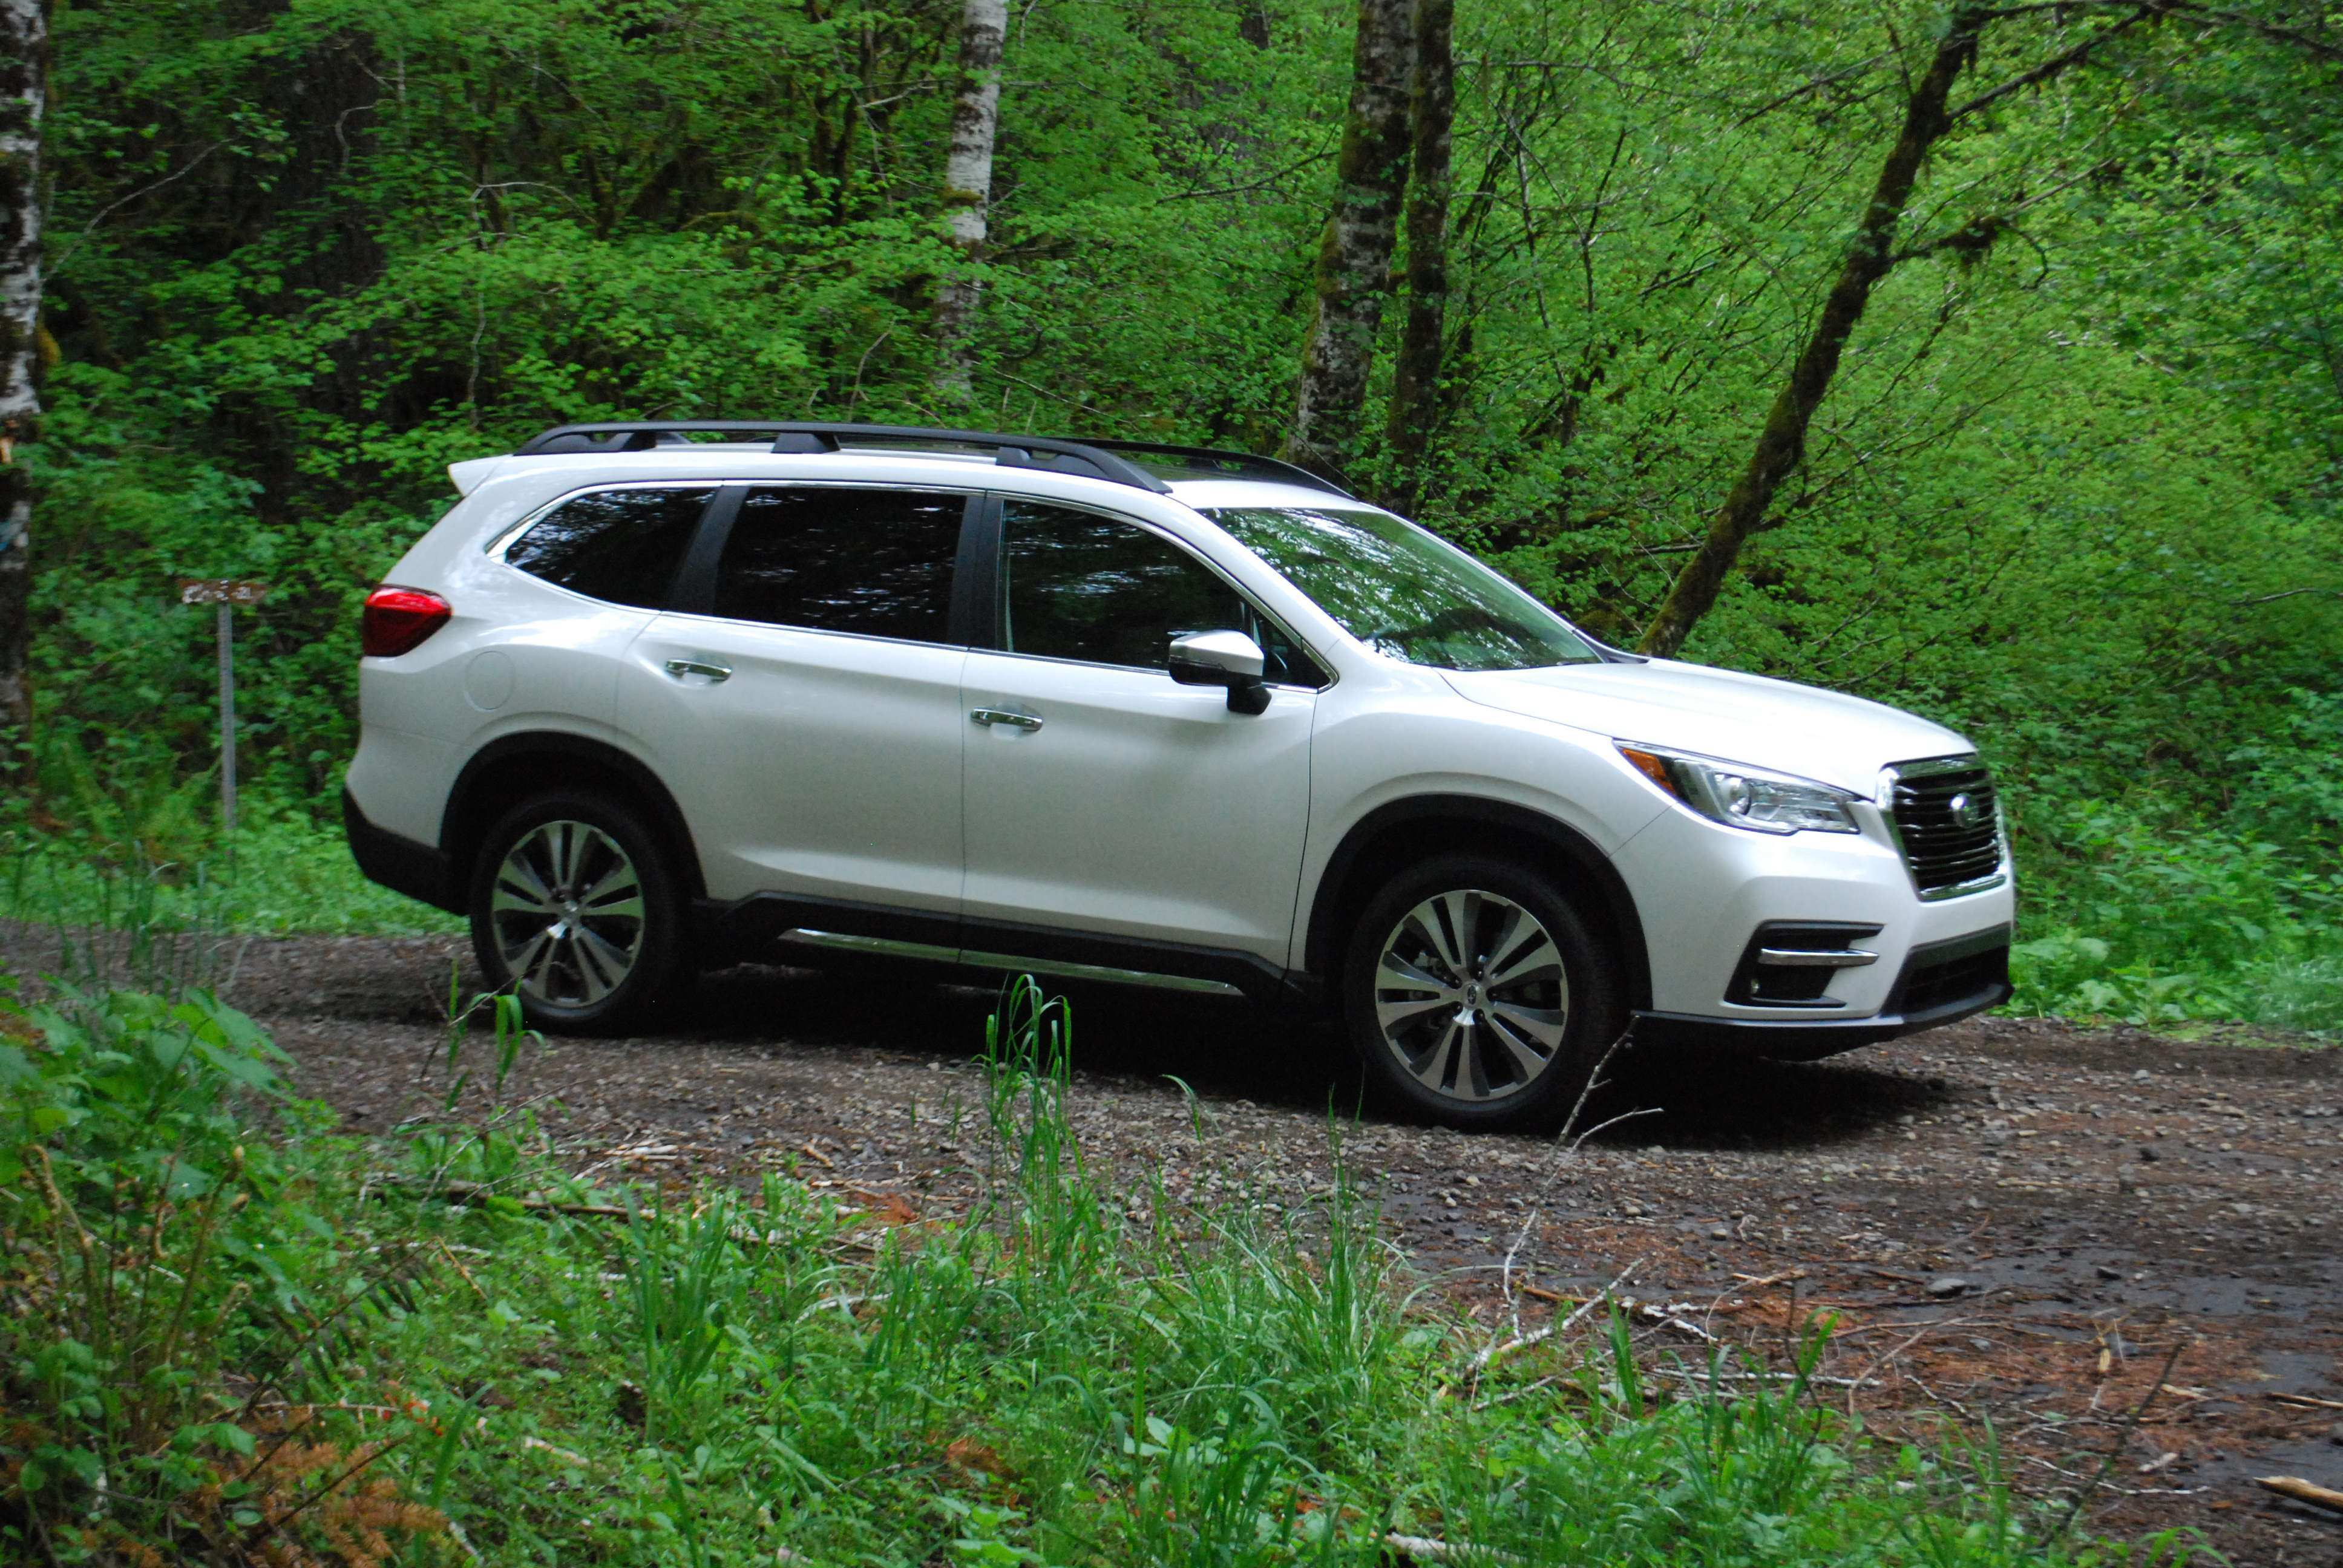 26 New 2020 Subaru Ascent Ground Clearance History with 2020 Subaru Ascent Ground Clearance